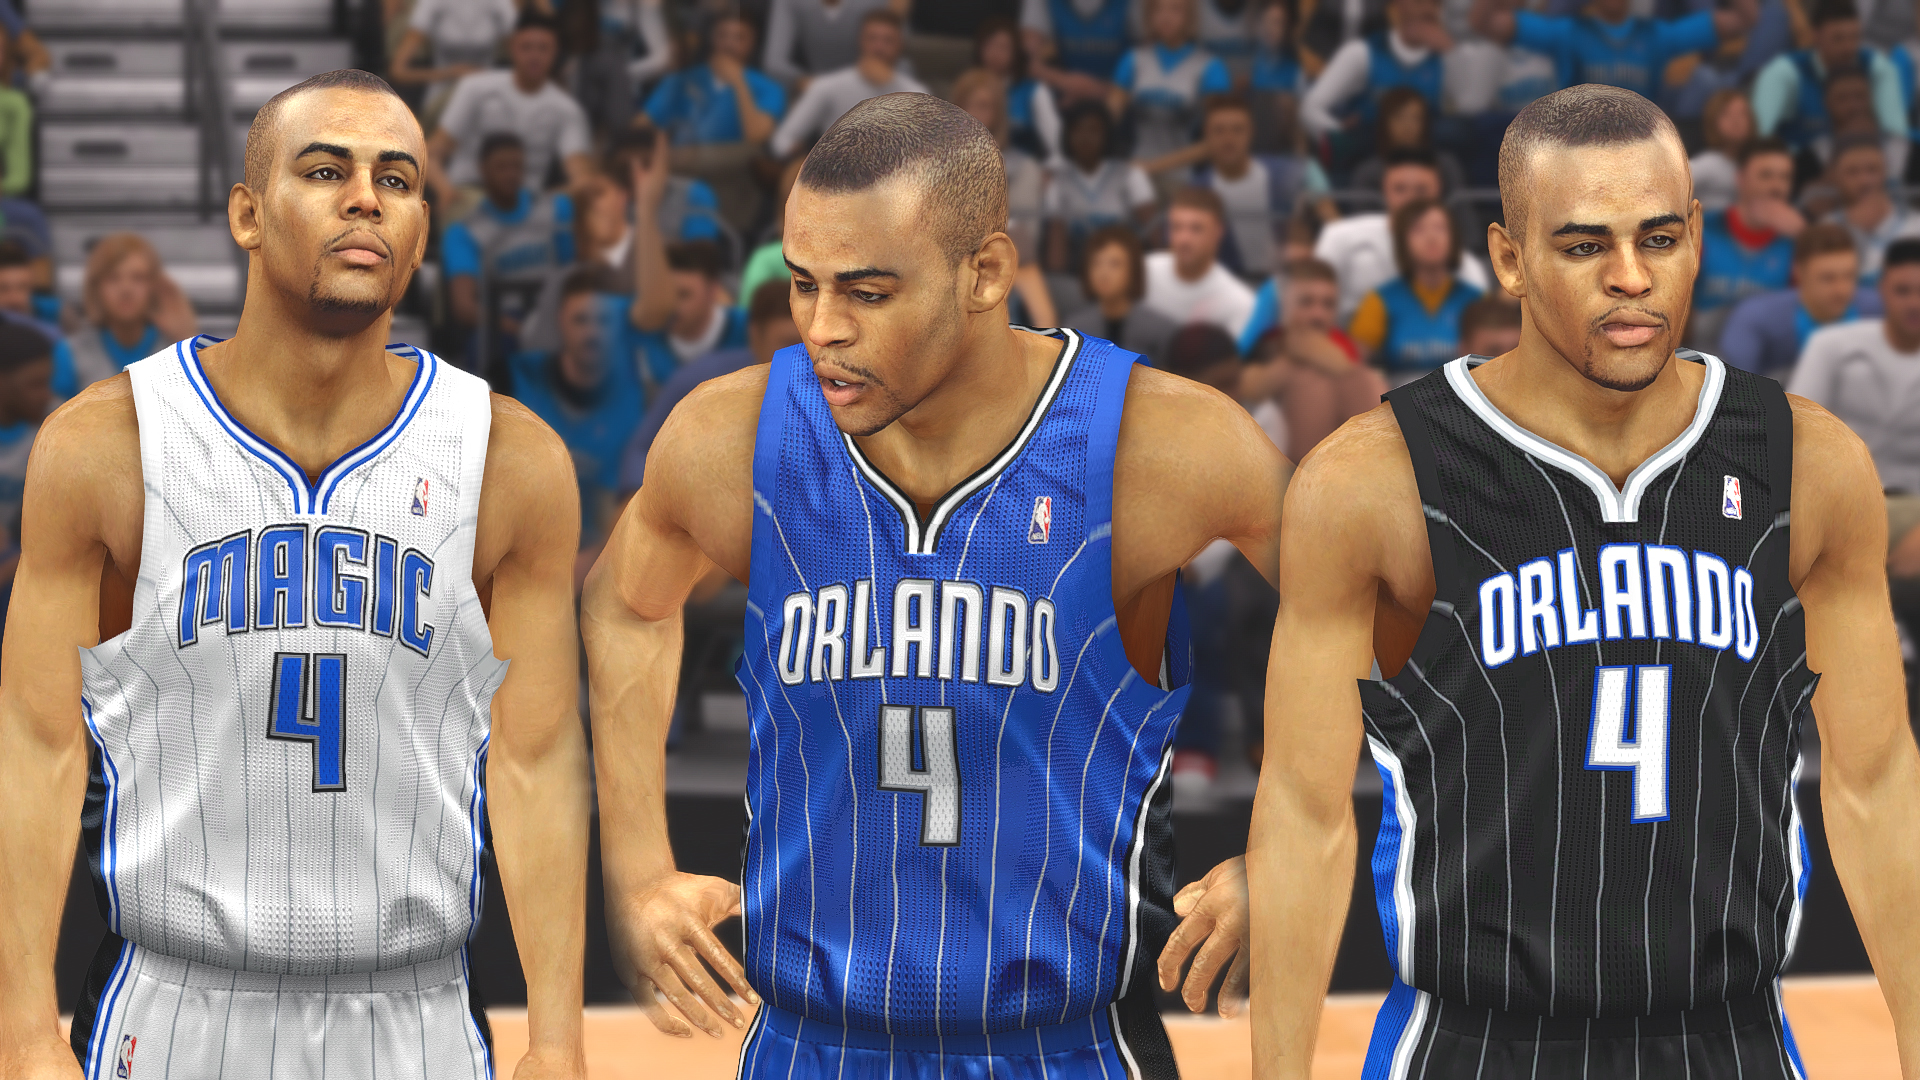 Orlando Magic Jersey Update